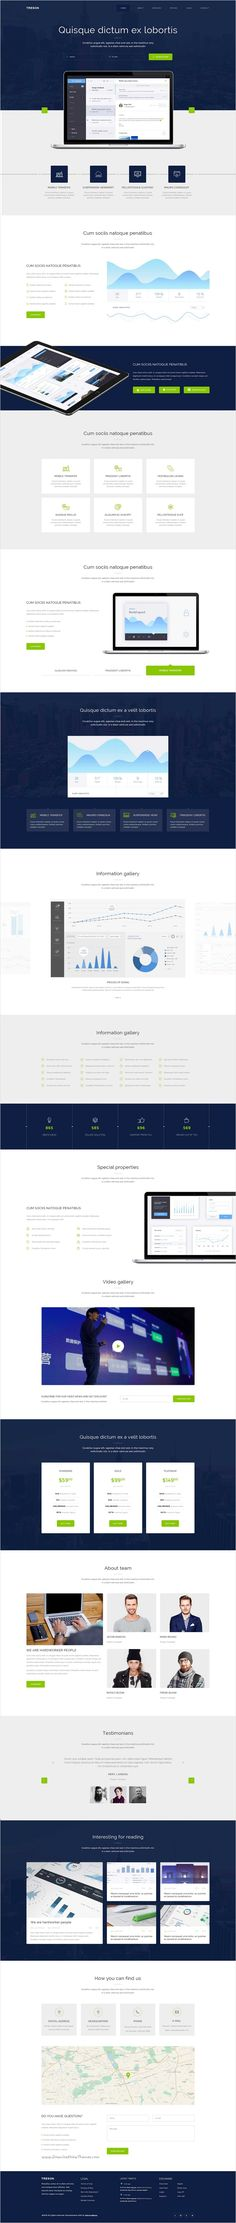 Treson is a one page business 3 in 1 #WordPress #Theme  for digital #agency, #freelancer, app, startup, business, services, software website download now➩ https://themeforest.net/item/treson-one-page-wordpress-theme/16700132?ref=Datasata